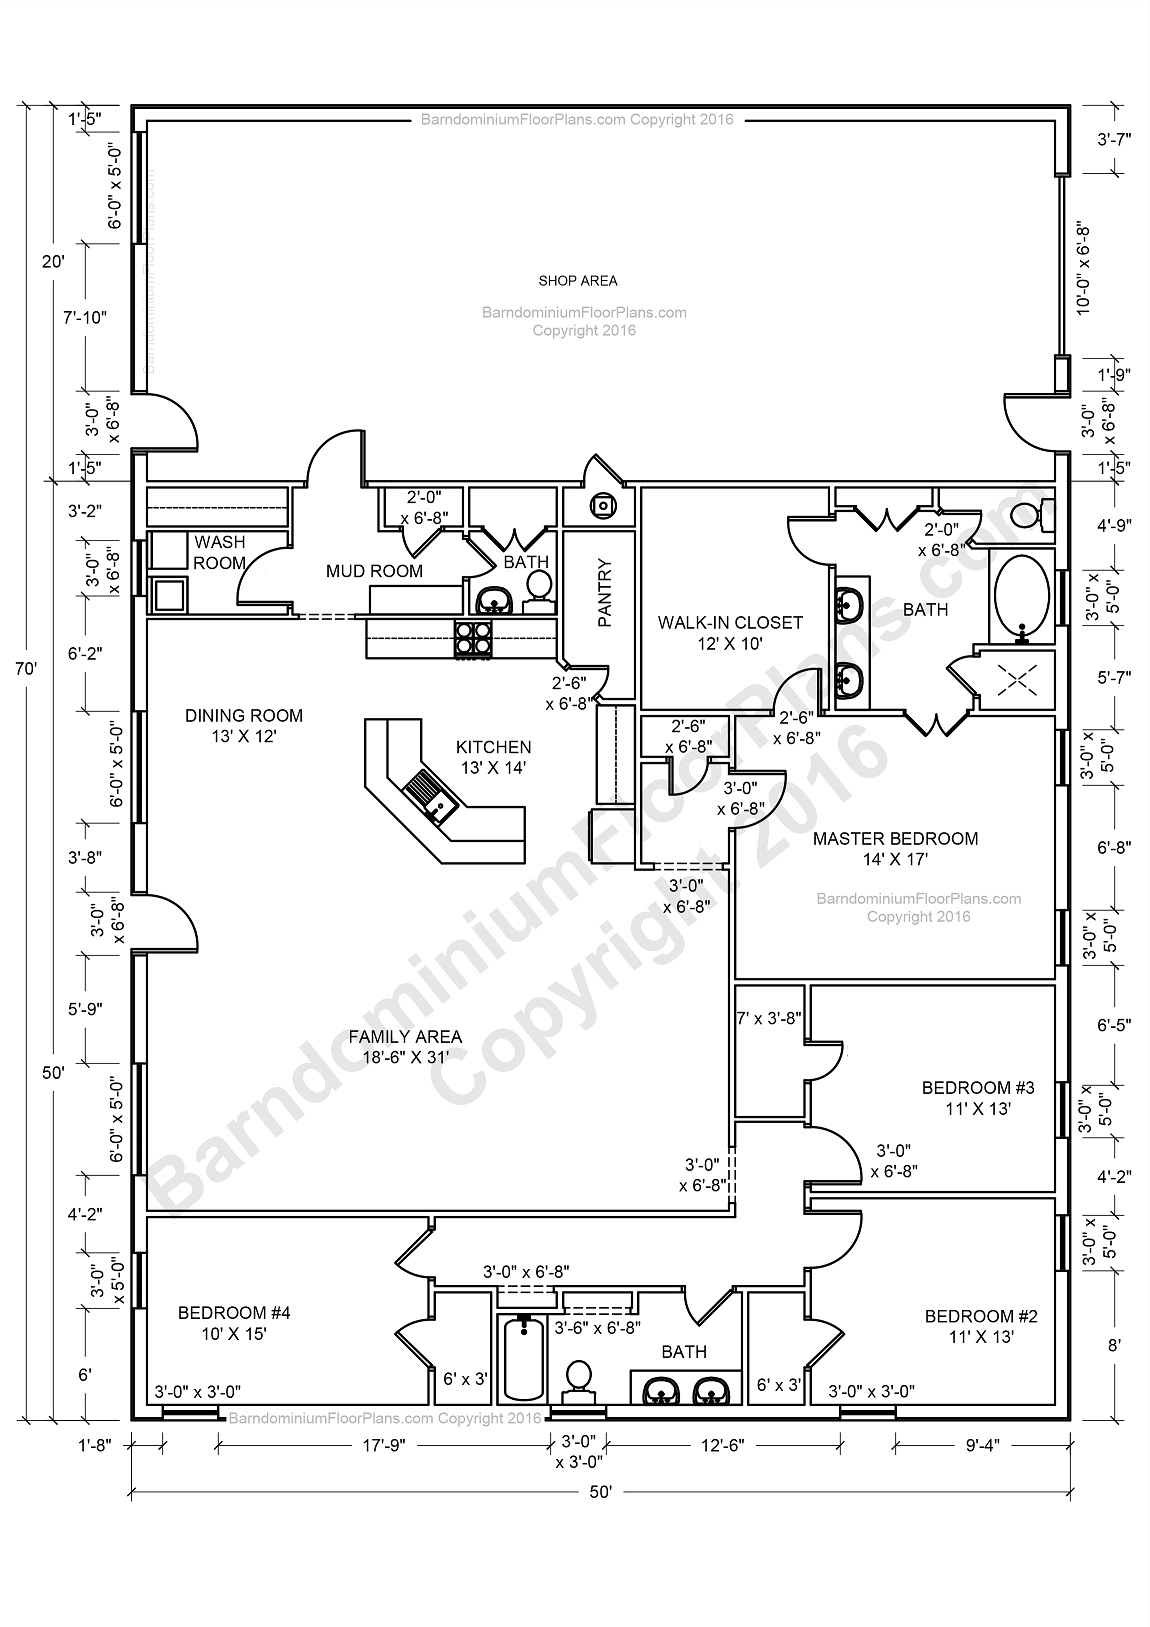 Barndominium floor plans barndominium floor plans 1 800 for Metal shop house plans